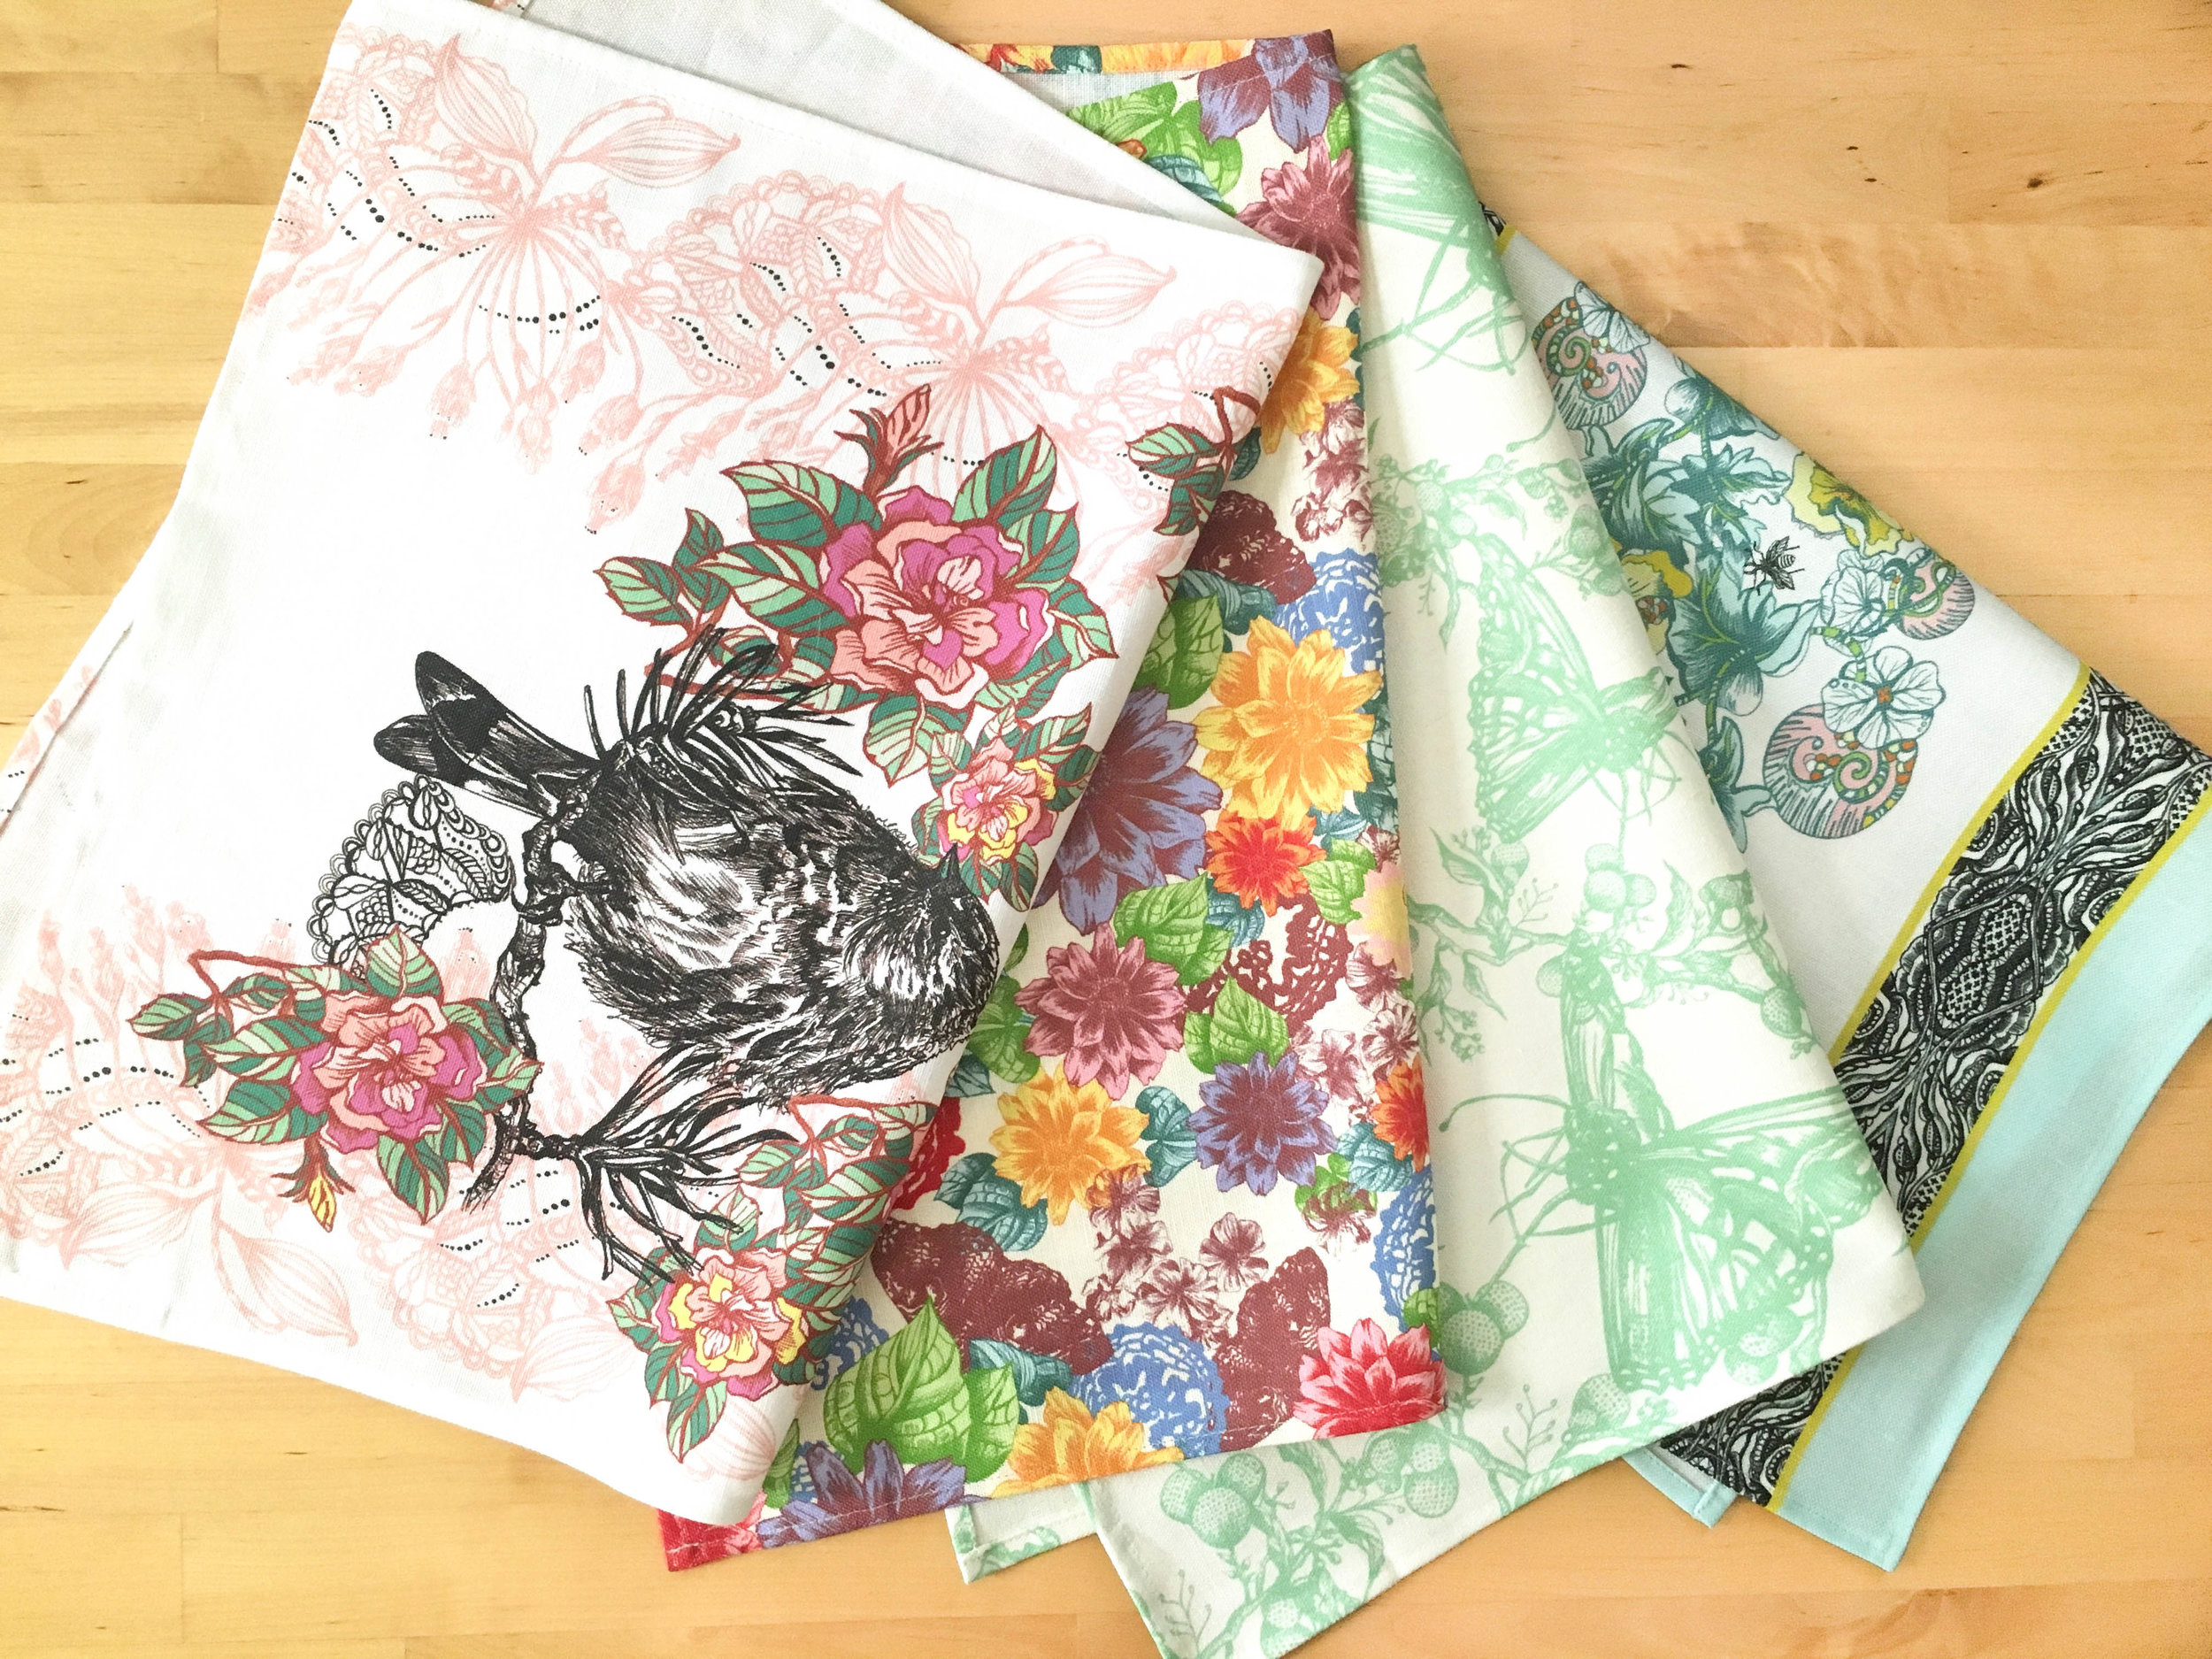 Four Janice Nelson kitchen tea towels folded in half laying side by side